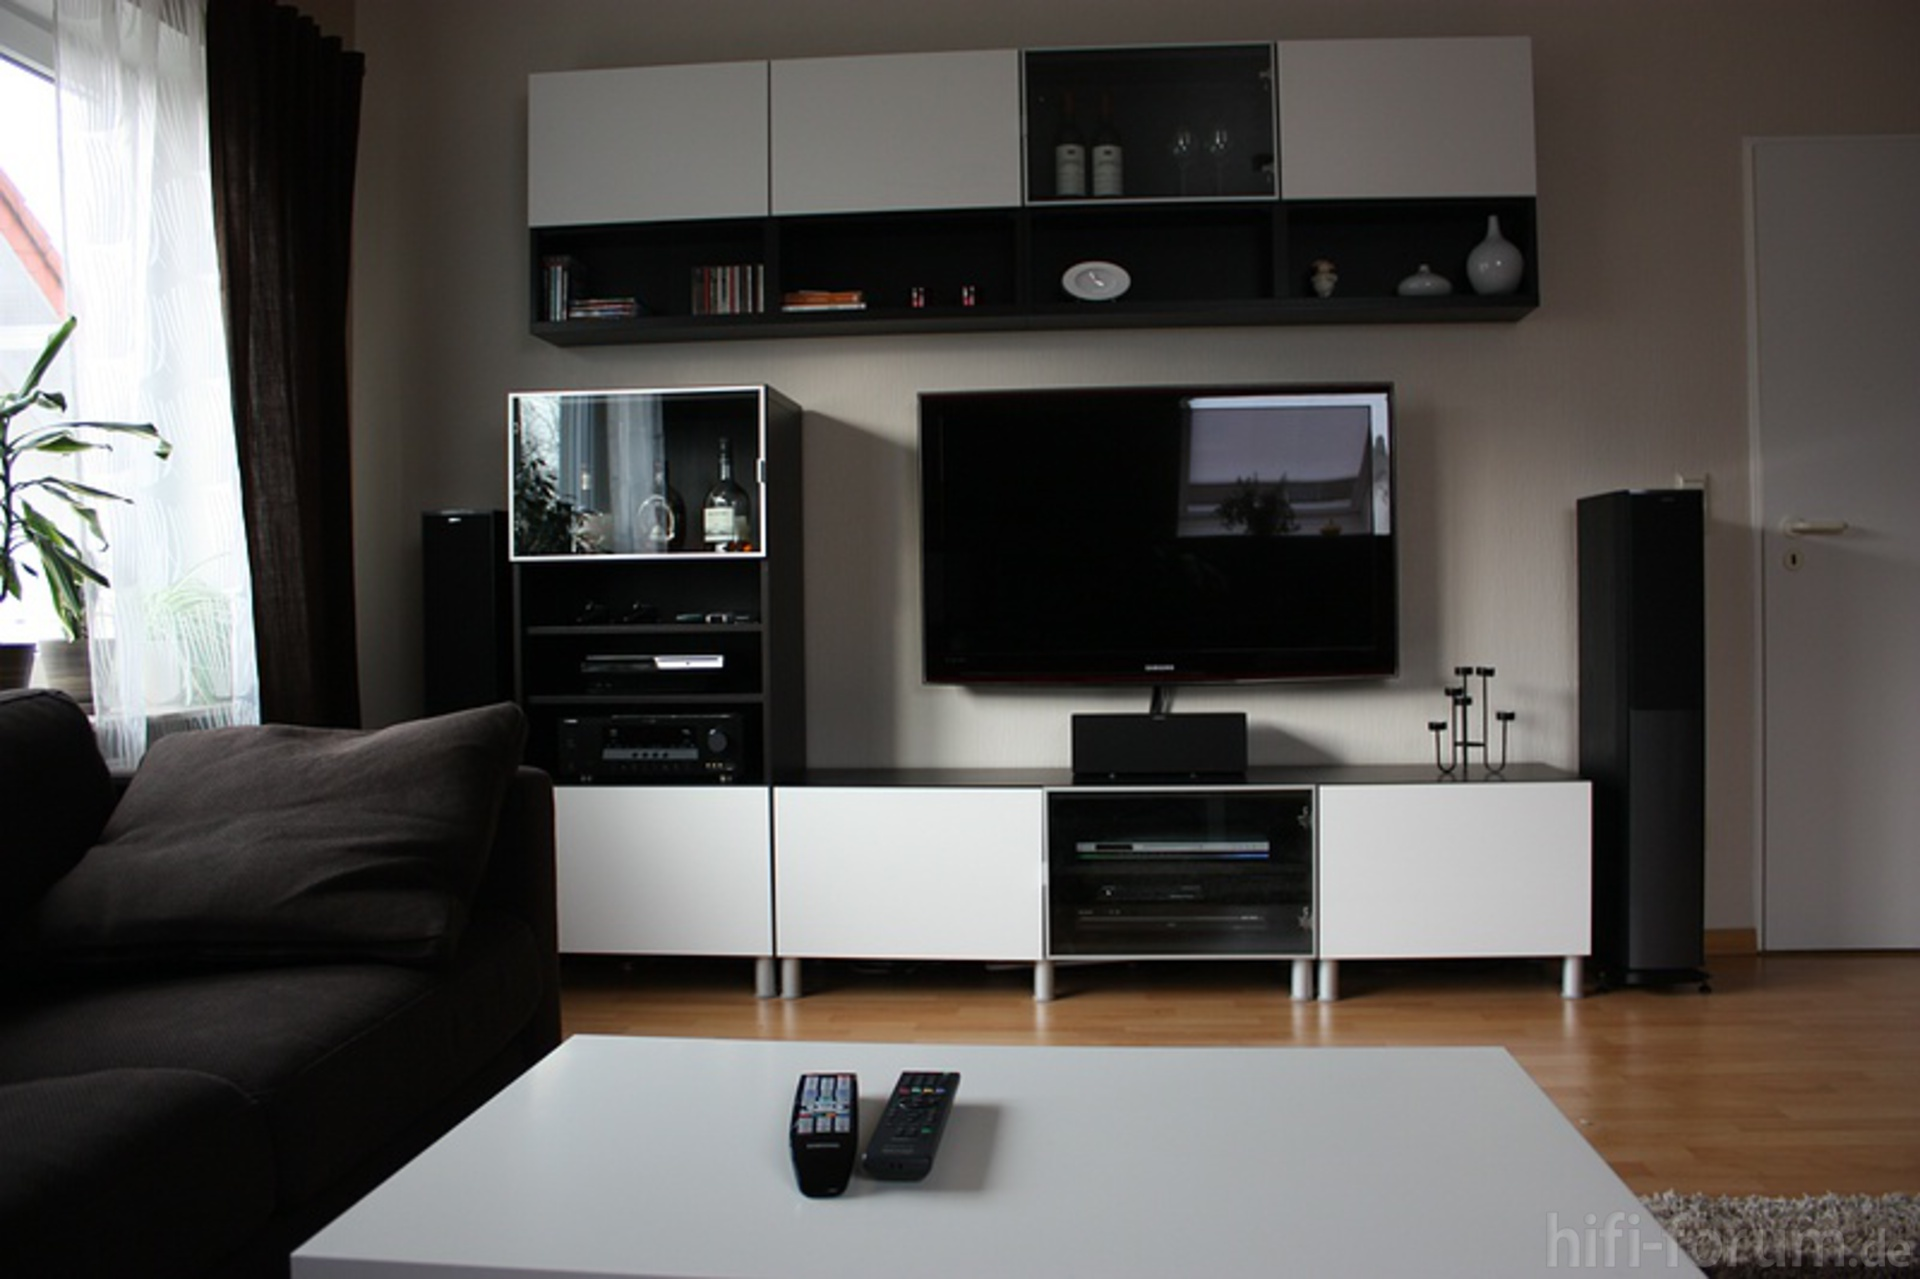 neues wohnzimmer 6 besta heimkino ikea samsung. Black Bedroom Furniture Sets. Home Design Ideas